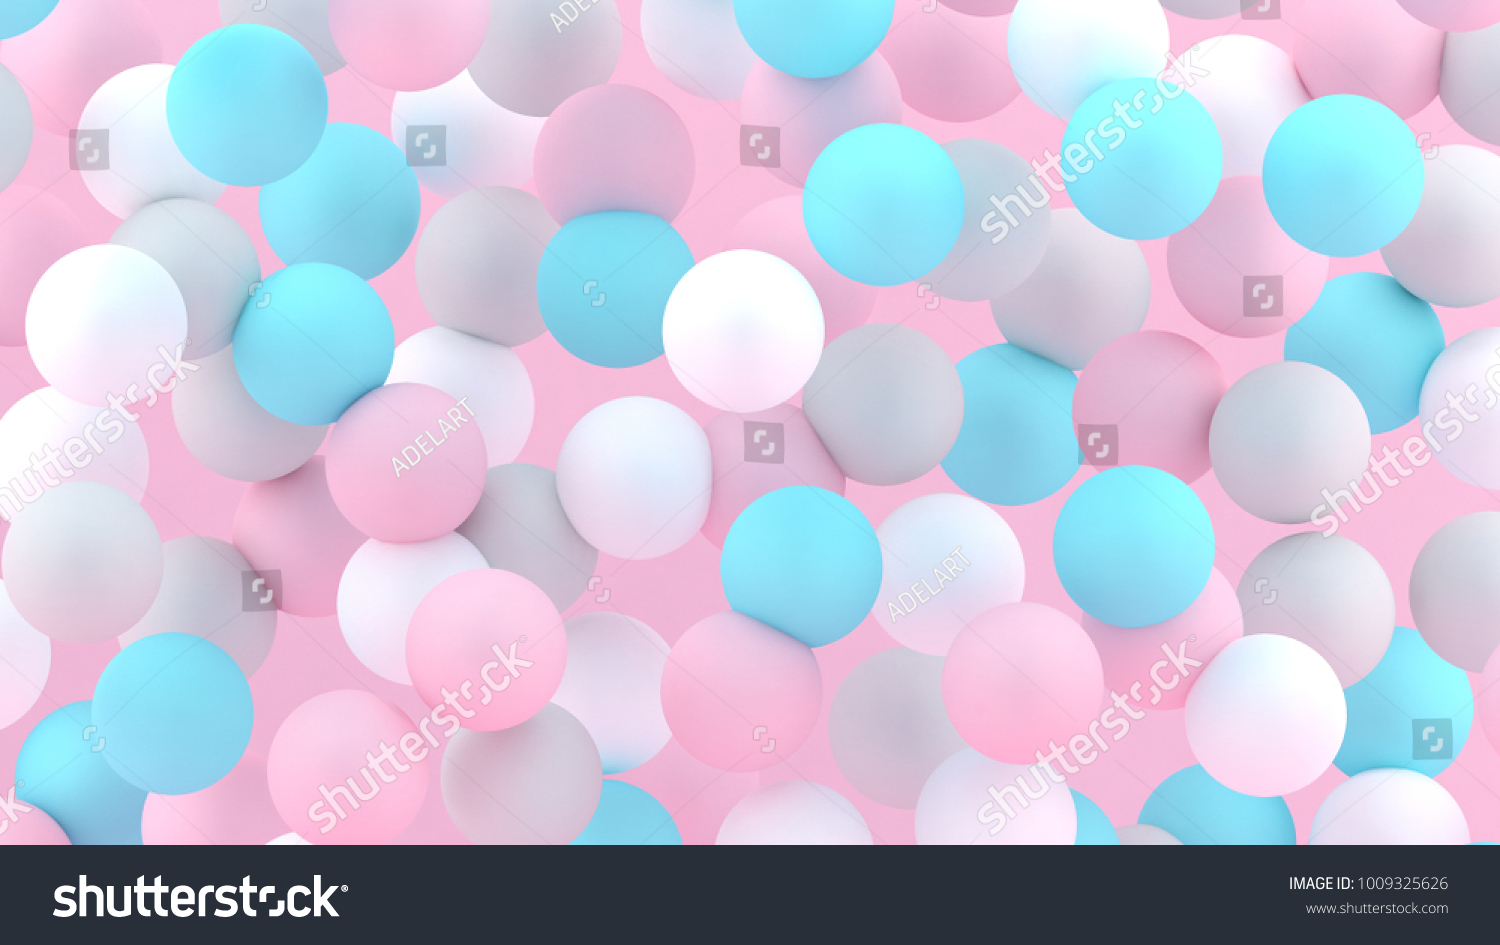 3d Bubbles Spheres Background Abstract Wallpaper Flying Geometric Shapes Trendy Modern Illustration